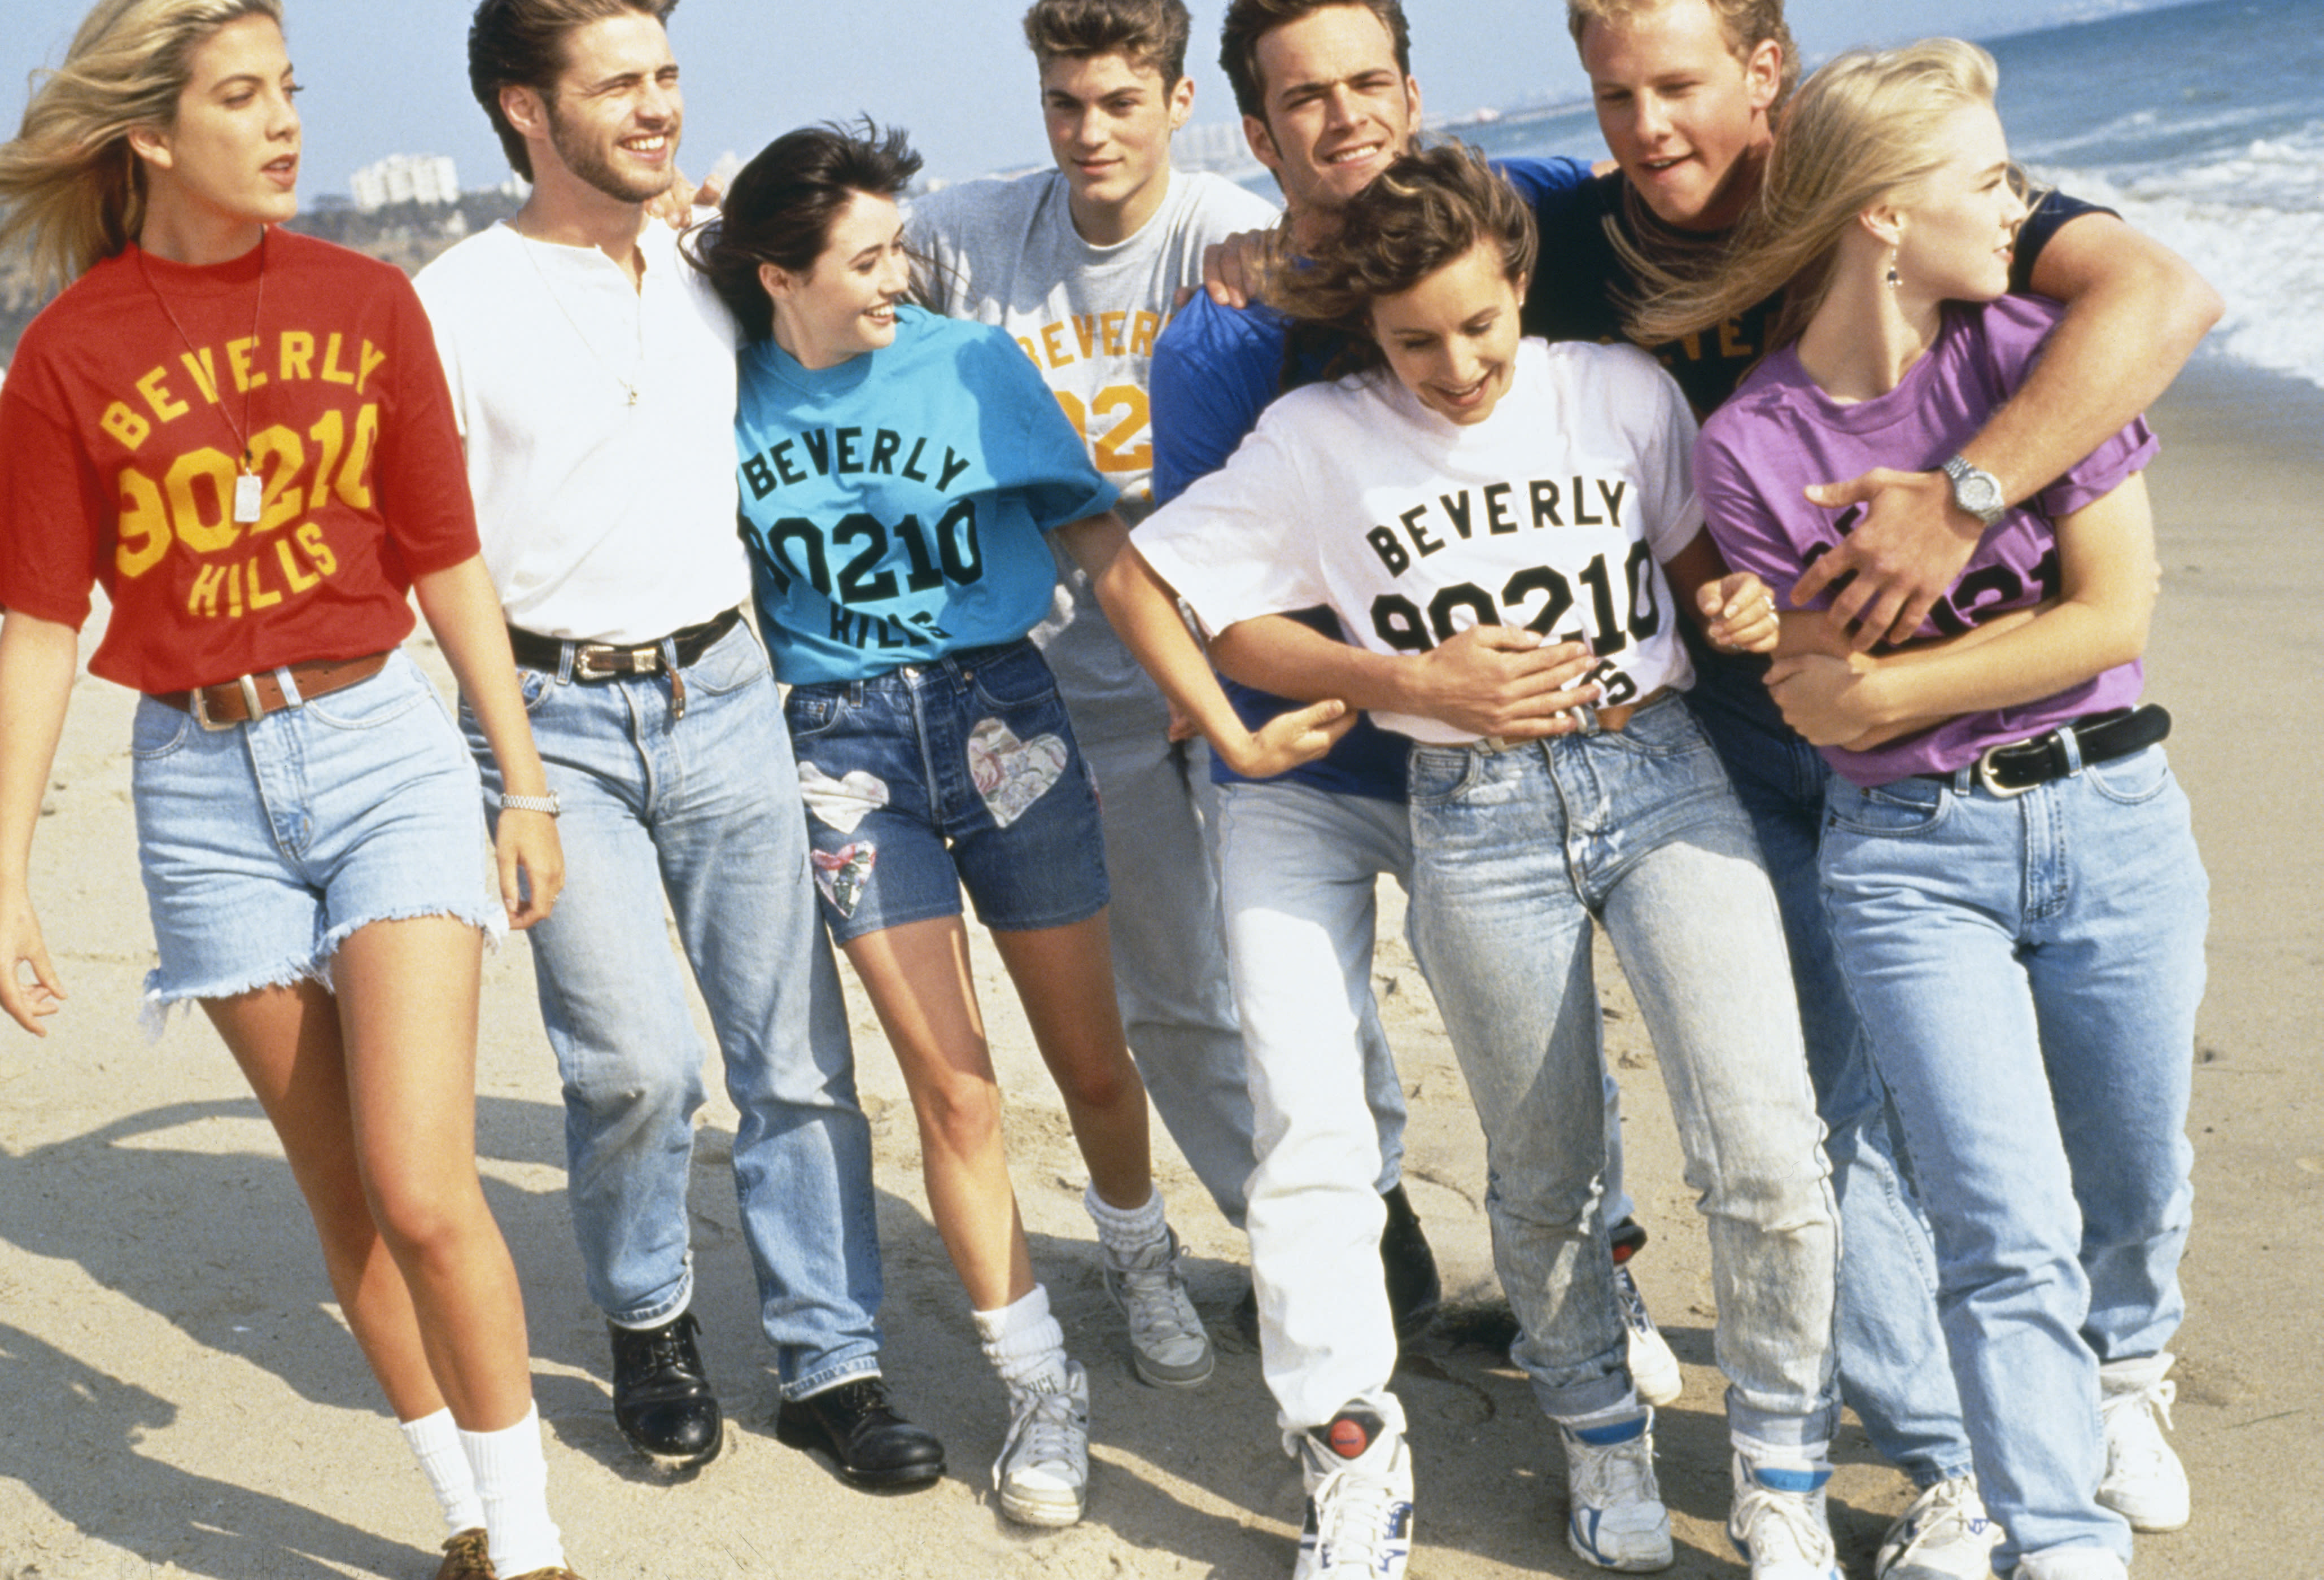 LOS ANGELES : GROUP PHOTO OF THE 'BEVERLY HILLS 90210' TEAM (Photo by mikel roberts/Sygma via Getty Images)